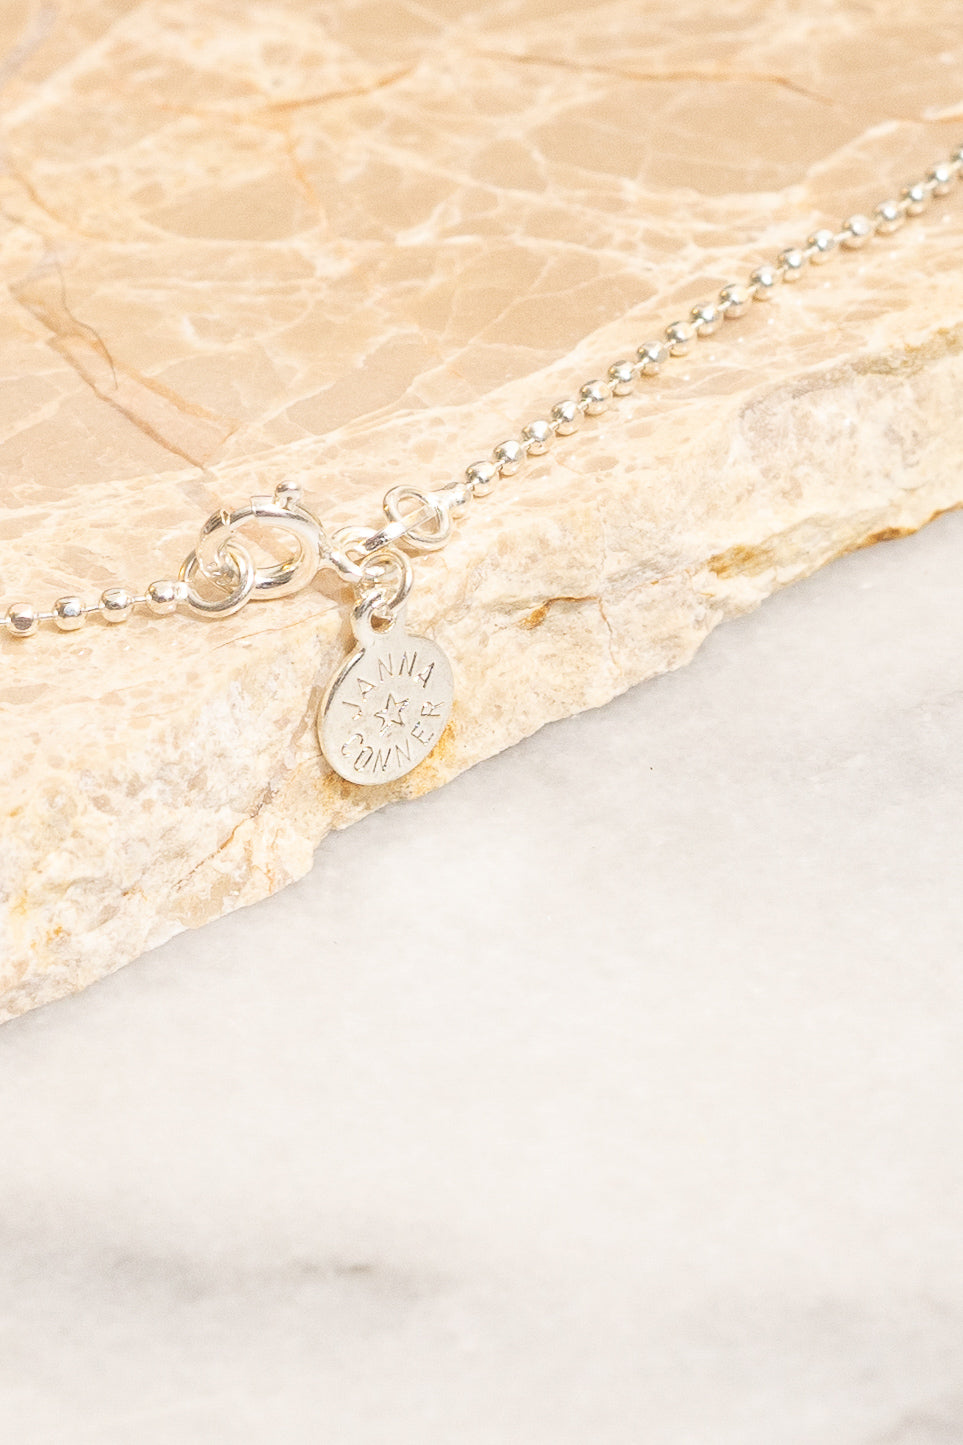 silver ball chain necklace closeup with nametag